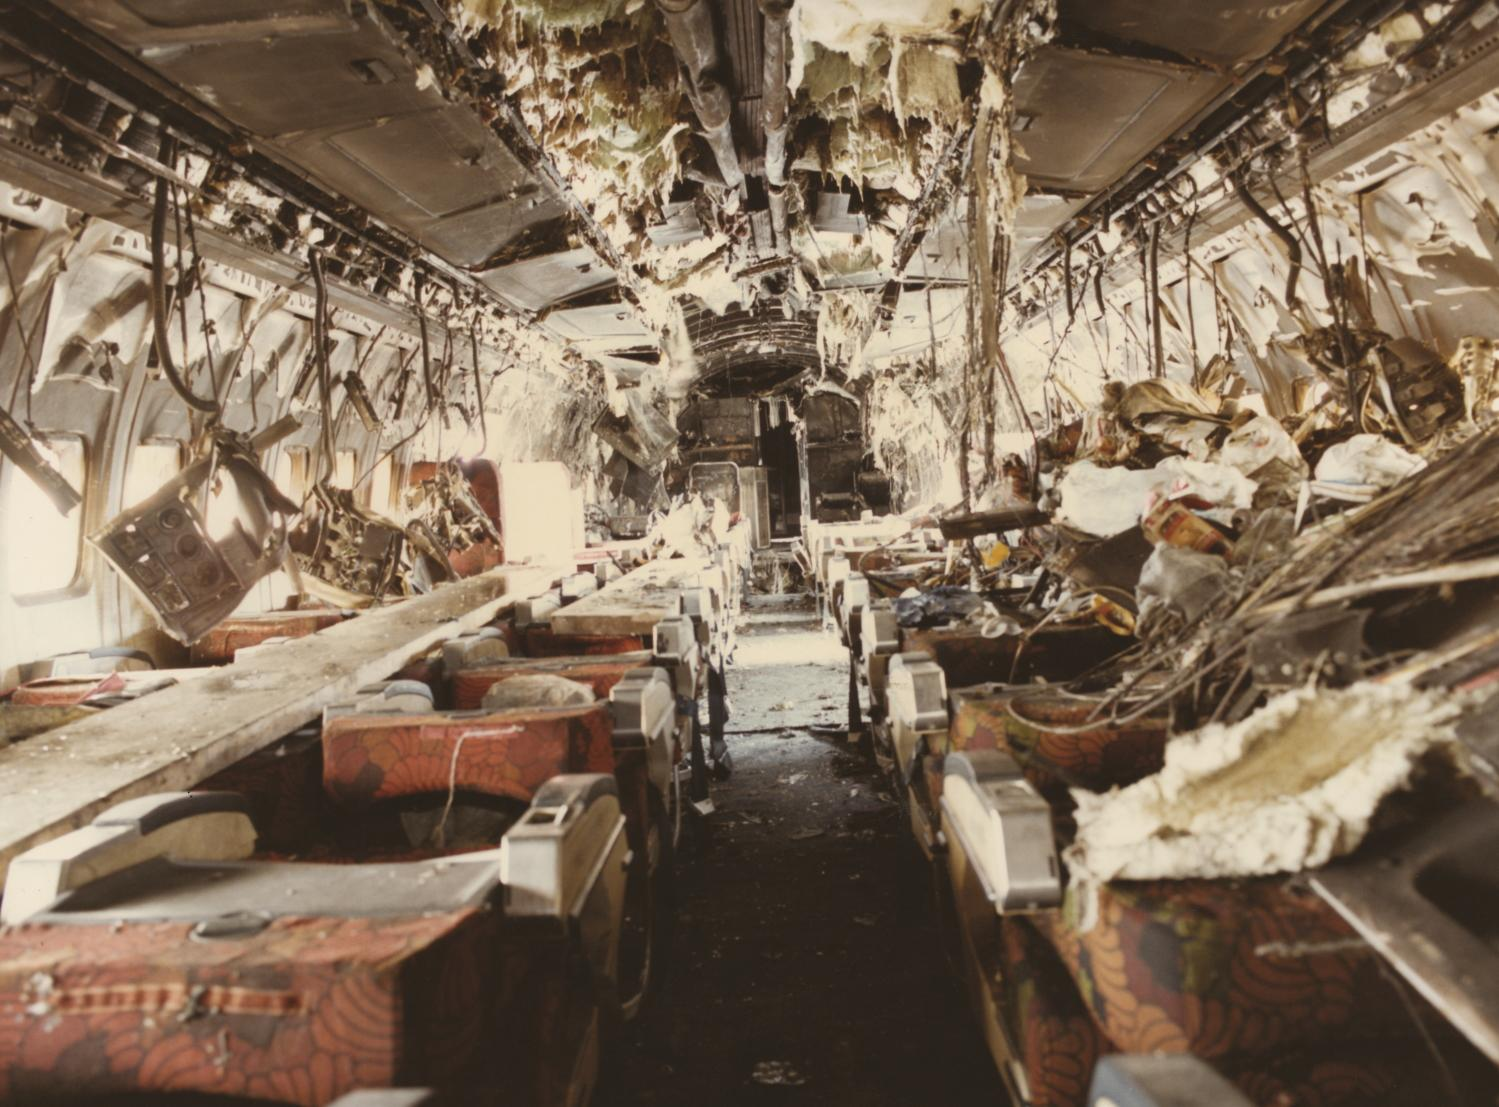 The wreckage inside the plane.